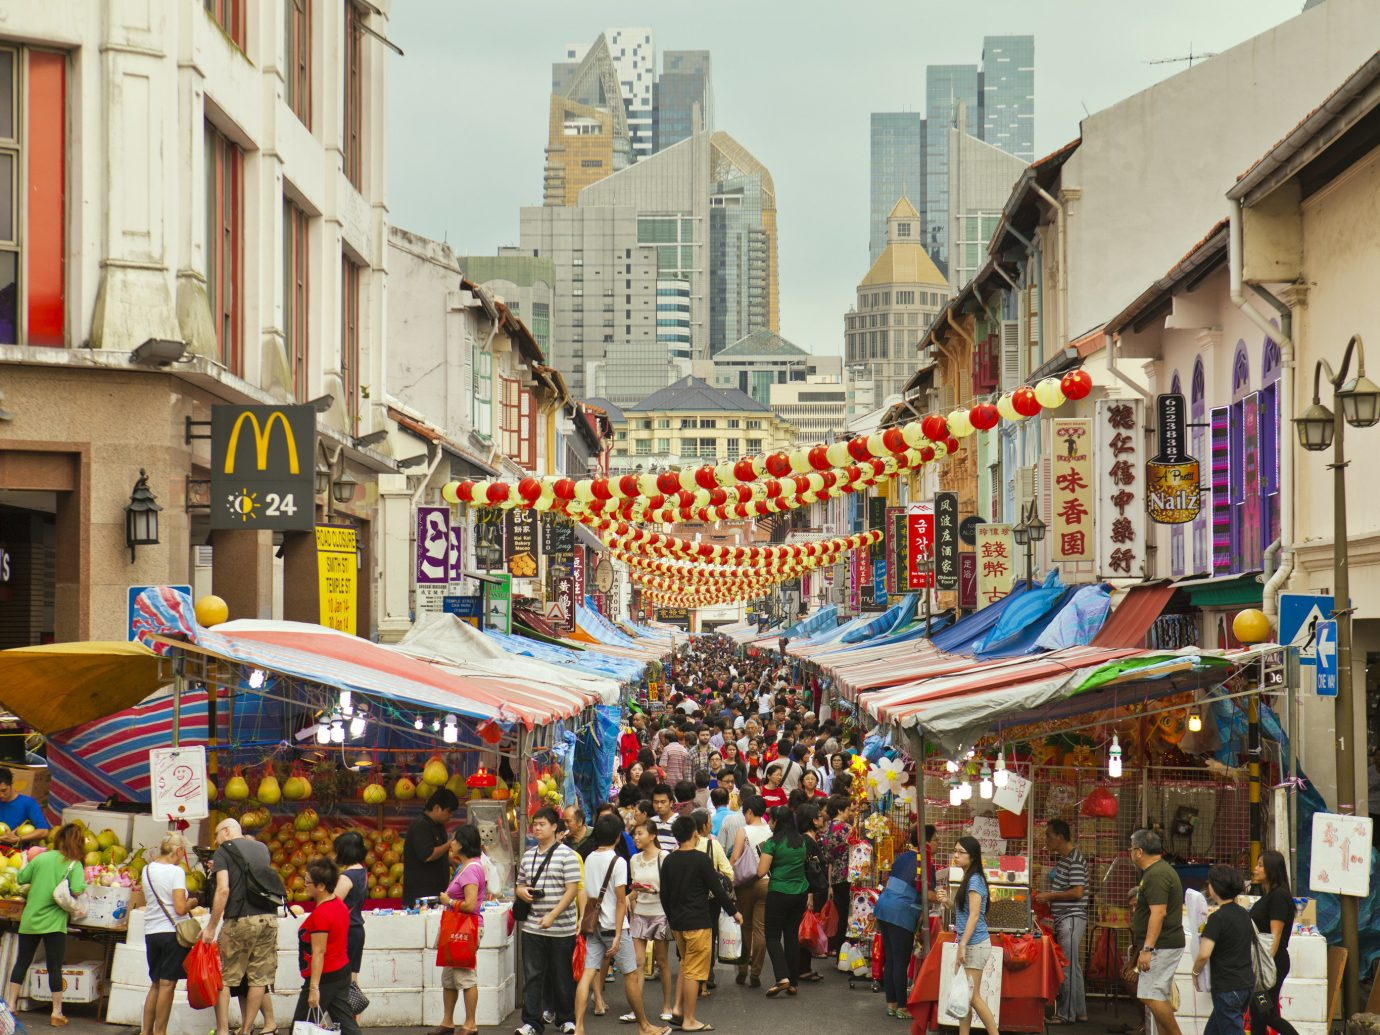 Offbeat Singapore Trip Ideas building outdoor people person street Town crowd road City marketplace scene public space walking neighbourhood human settlement group tourism Downtown market plaza bazaar infrastructure pedestrian way shopping cityscape town square several